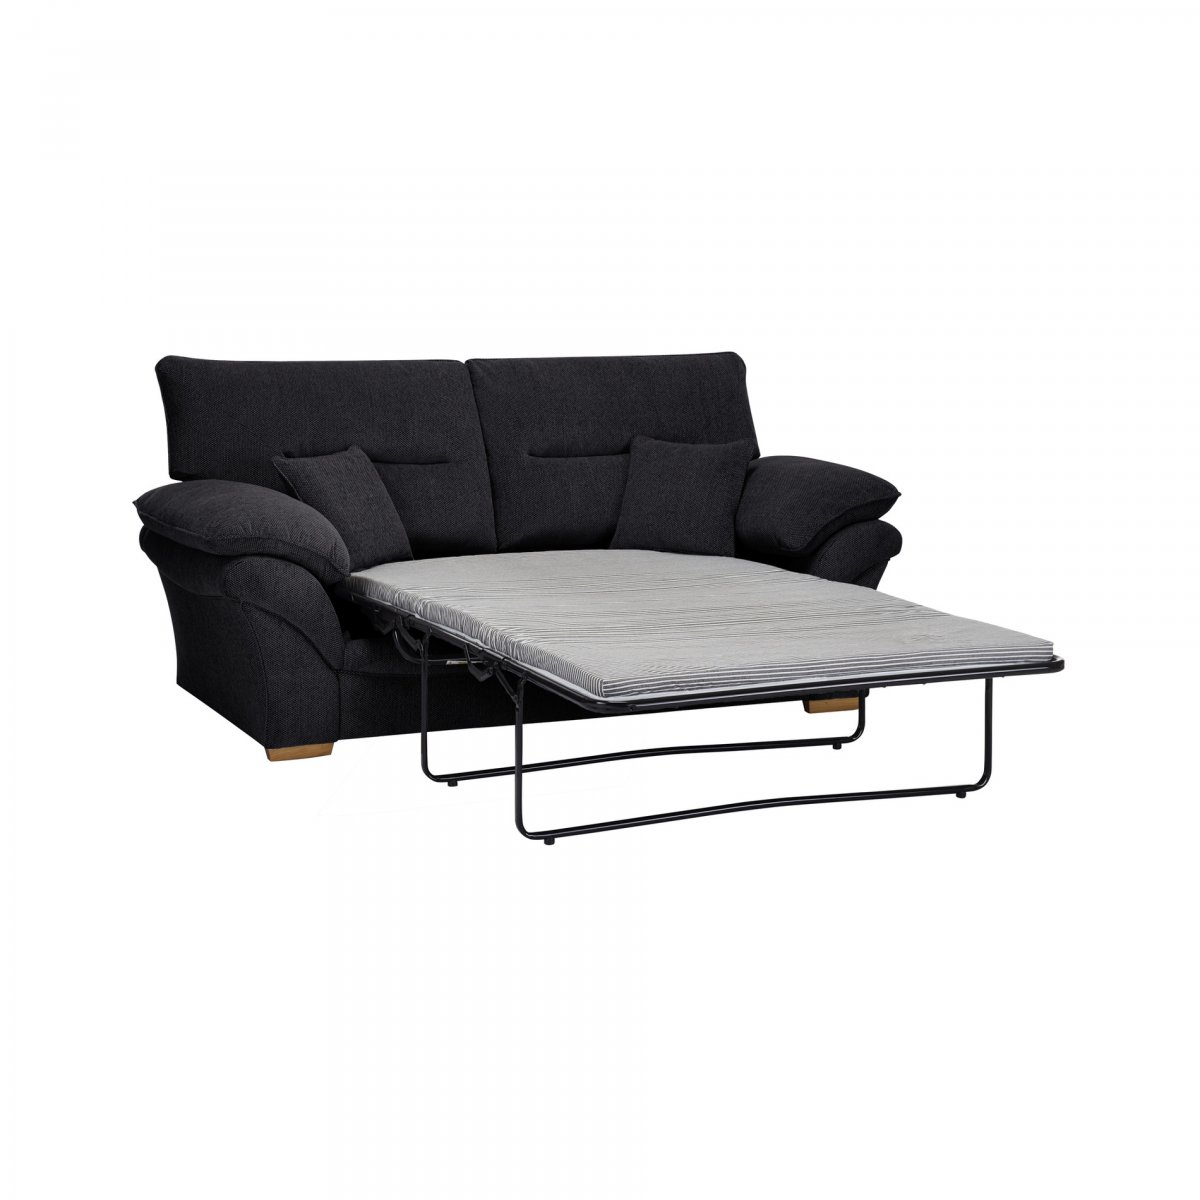 Chloe 2 seater standard sofa bed in black fabric for Sofa bed 2 seater